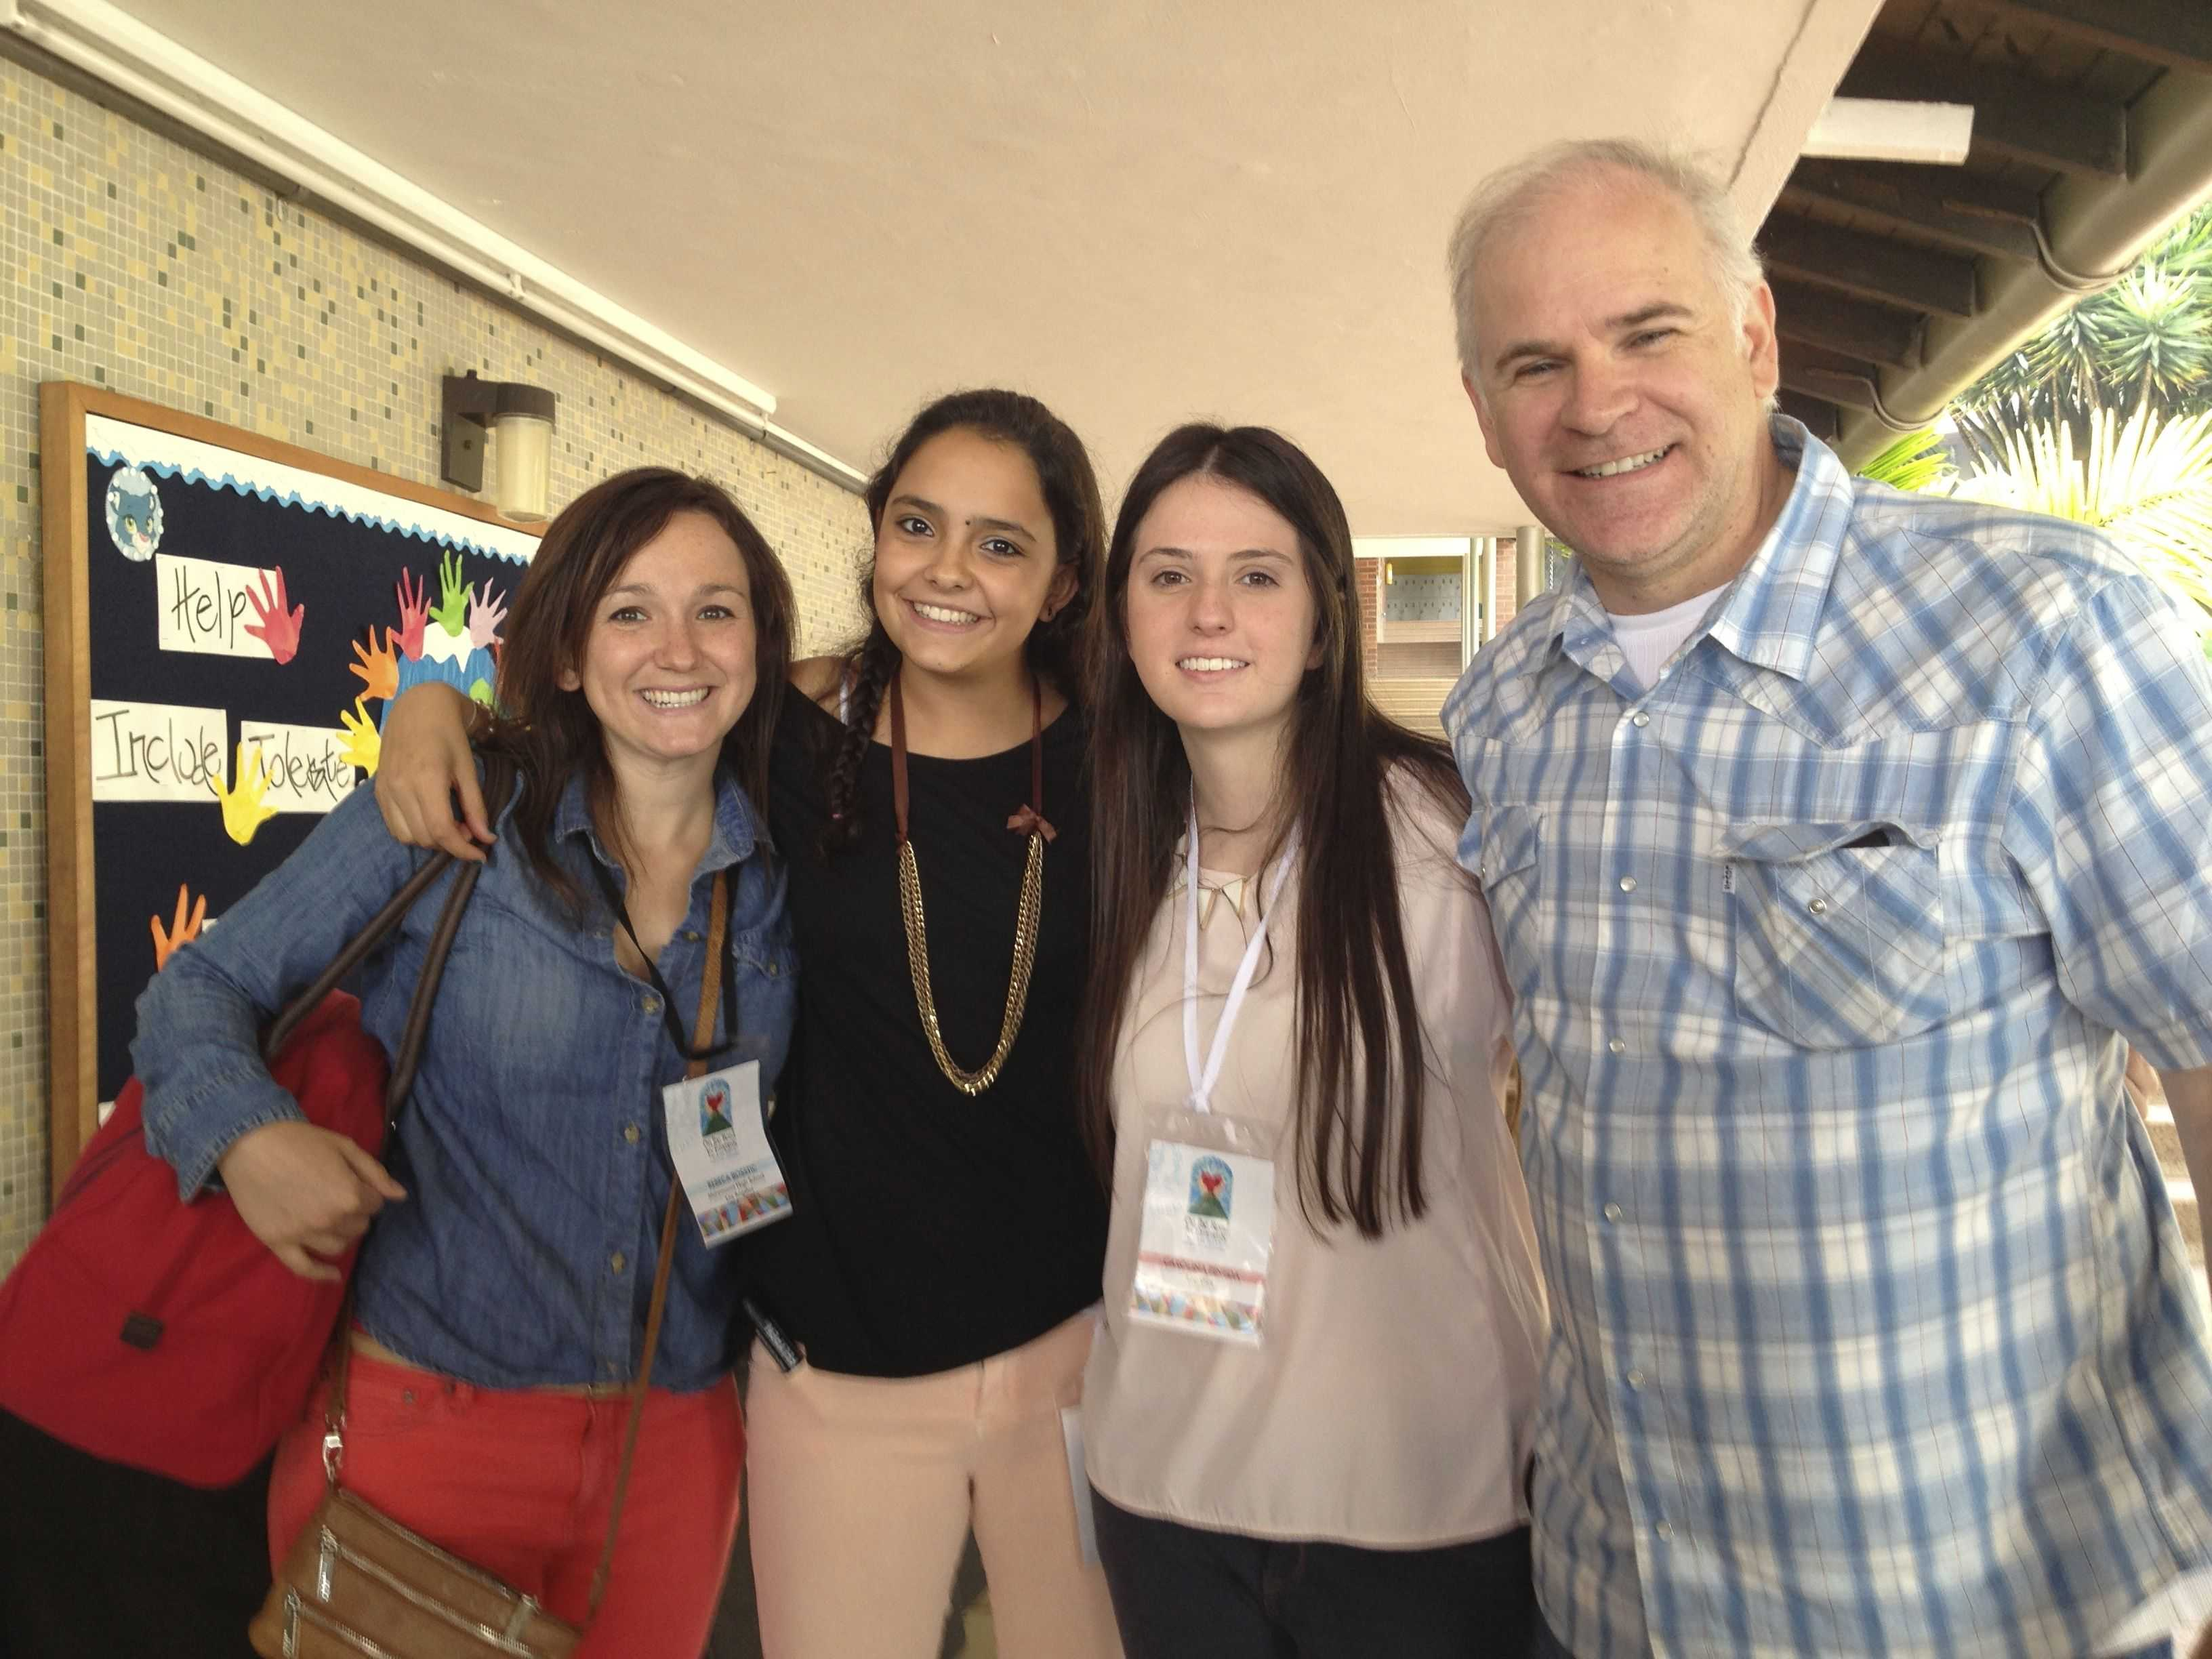 The Marymount Medellin students smile with Mrs. Bostic and Mr. Klein during the Religious of the Sacred Heart of Mary International Conference last June in Medellin.